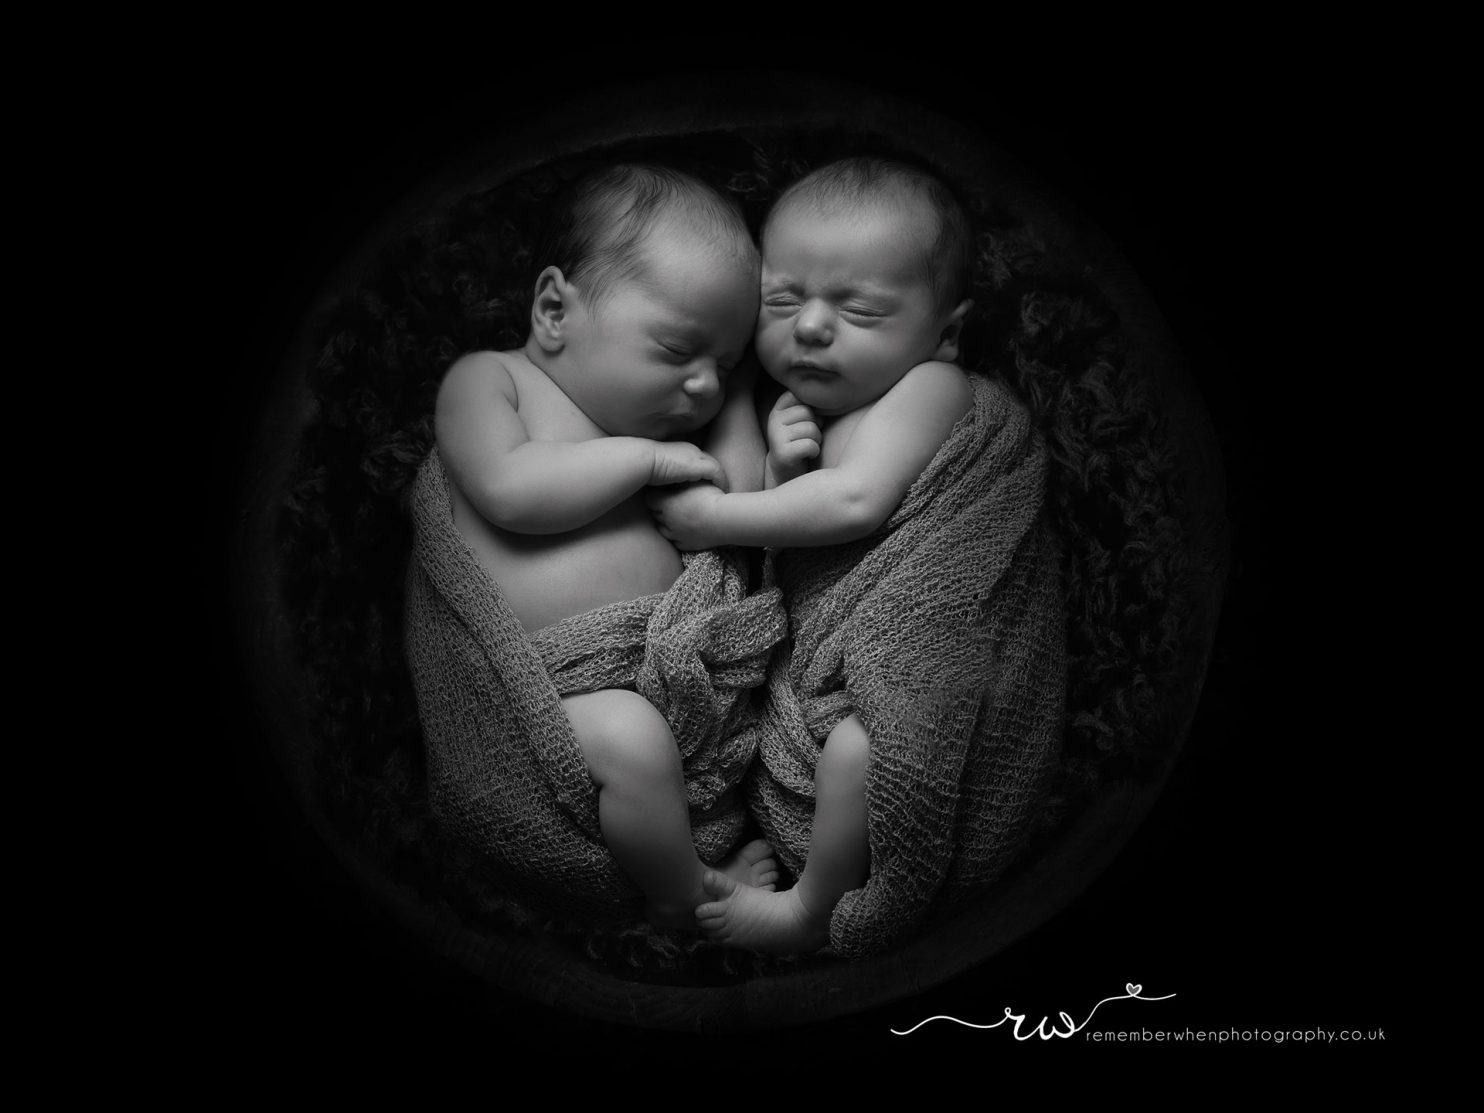 twin-newborn-photography-baby-photoshoot-bishopauckland-countydurham-northeast7